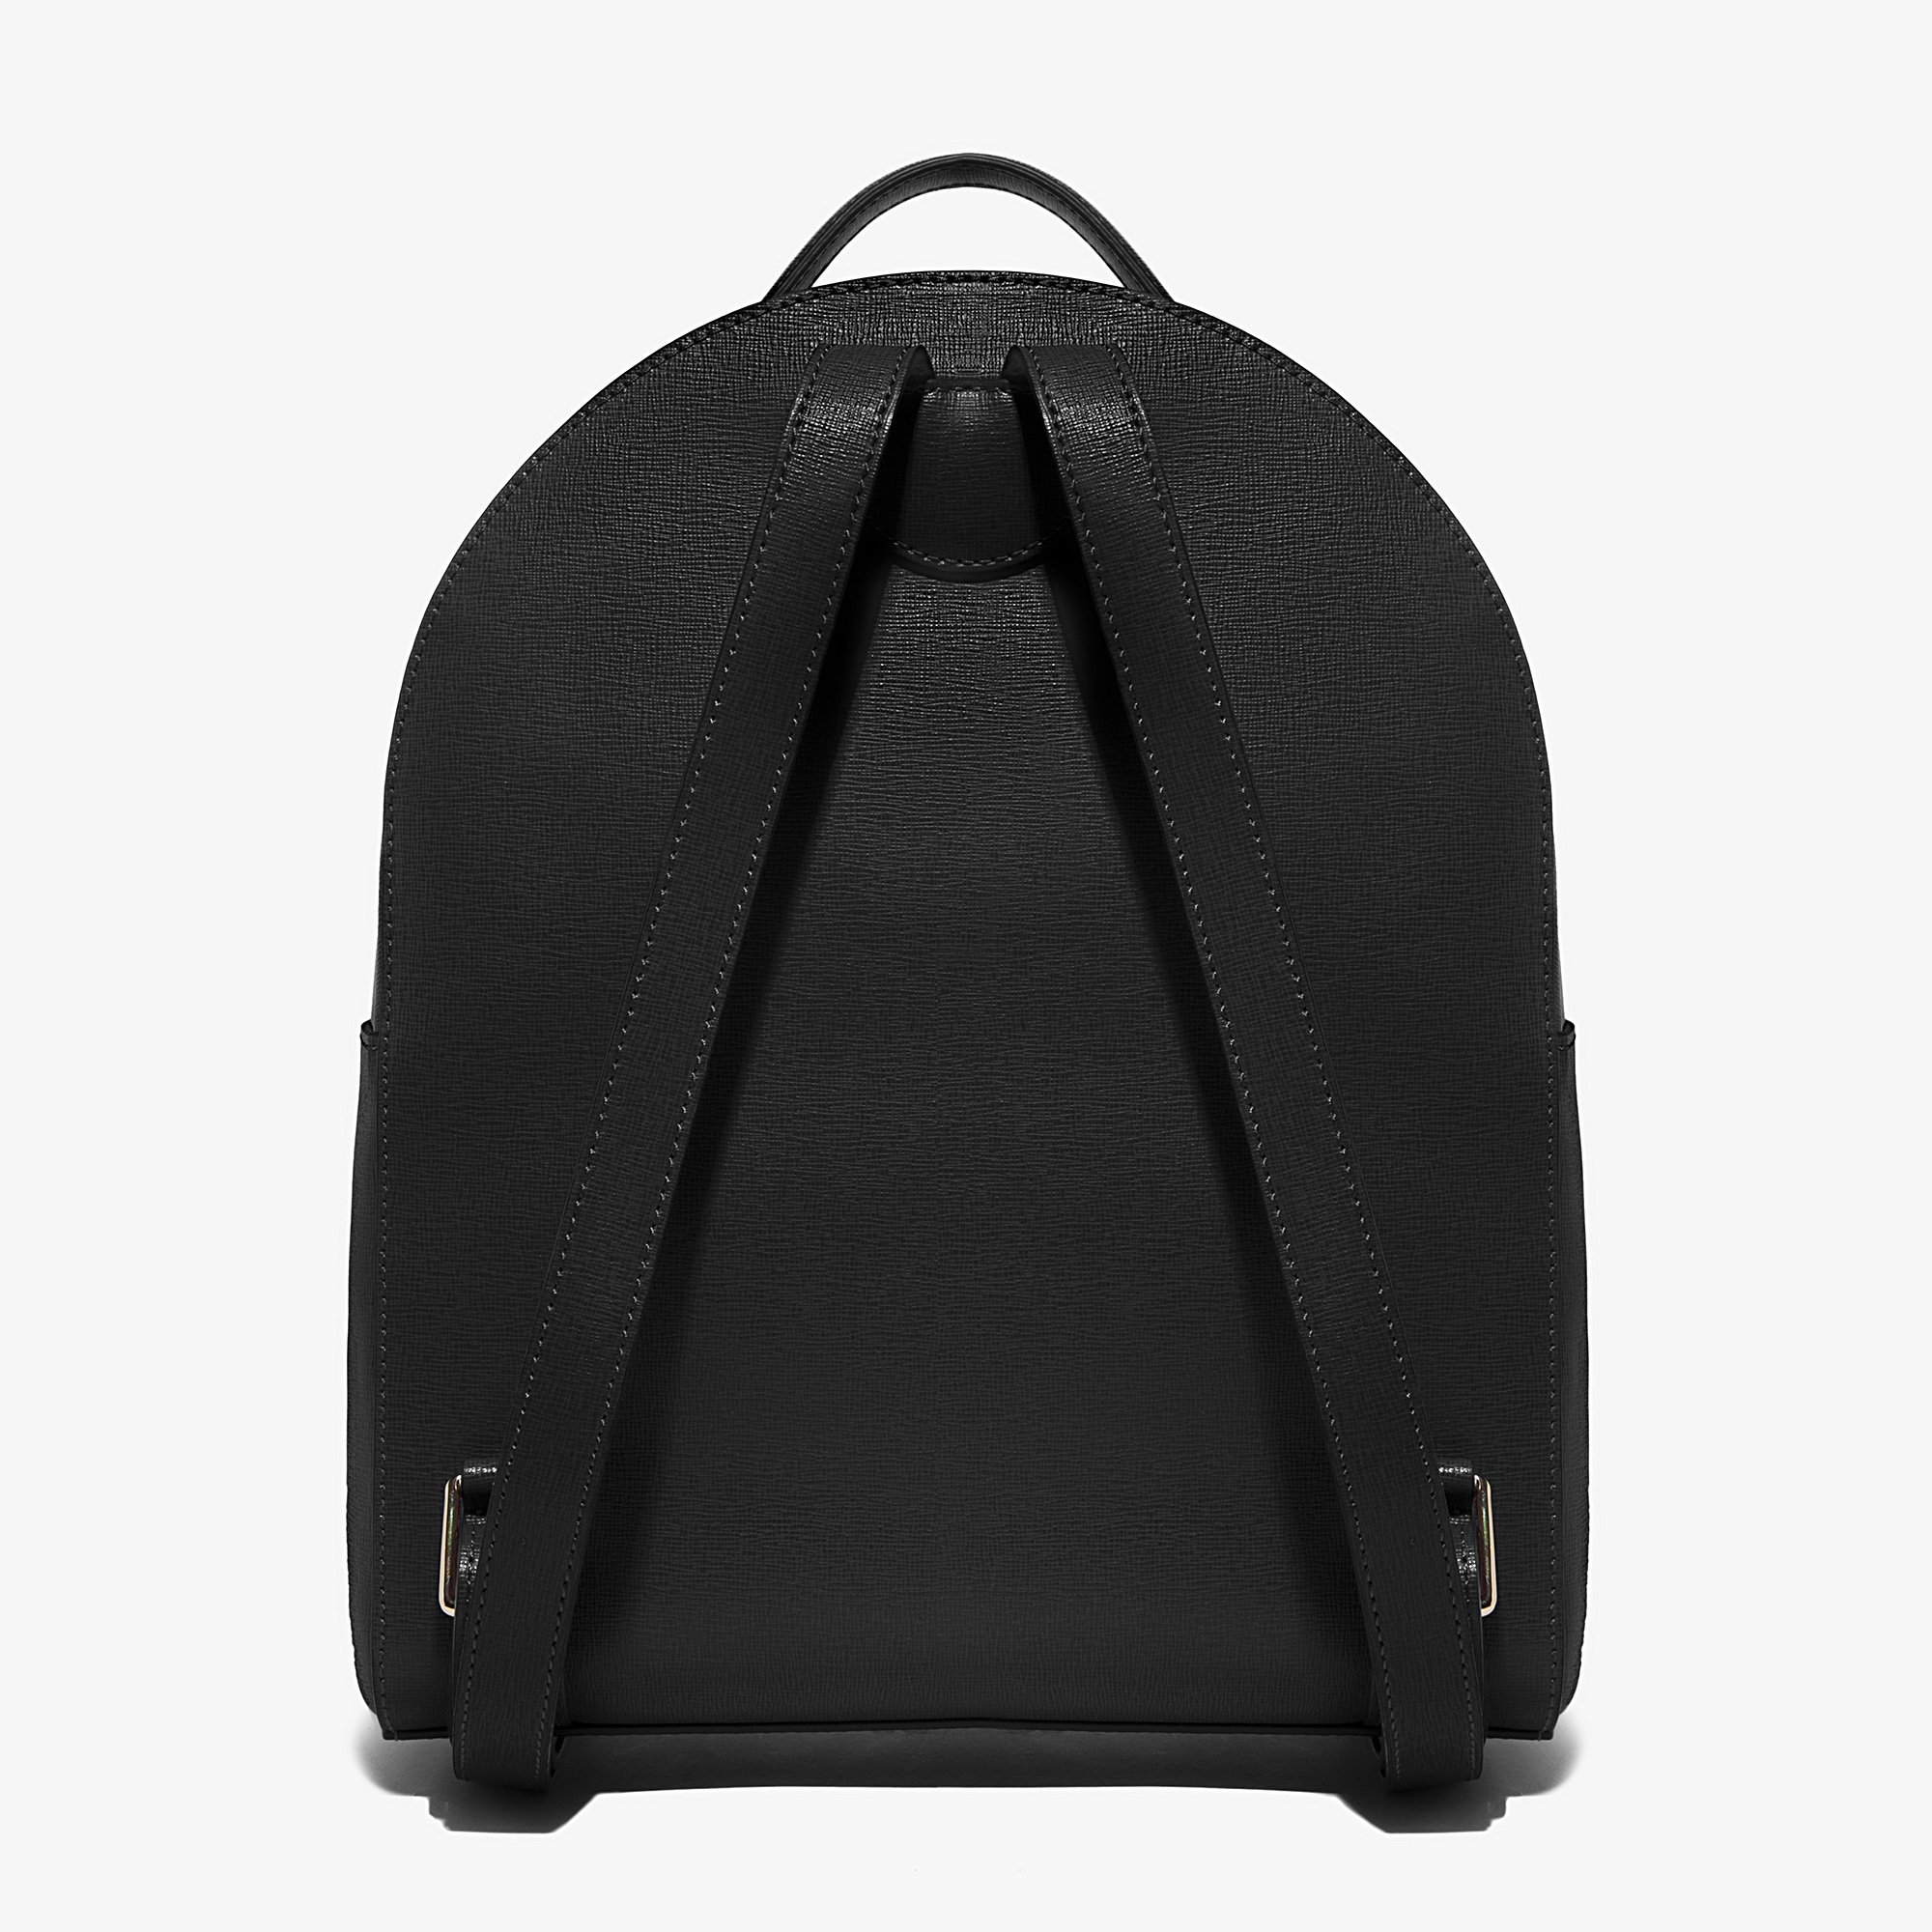 Clementine saffiano leather backpack bag